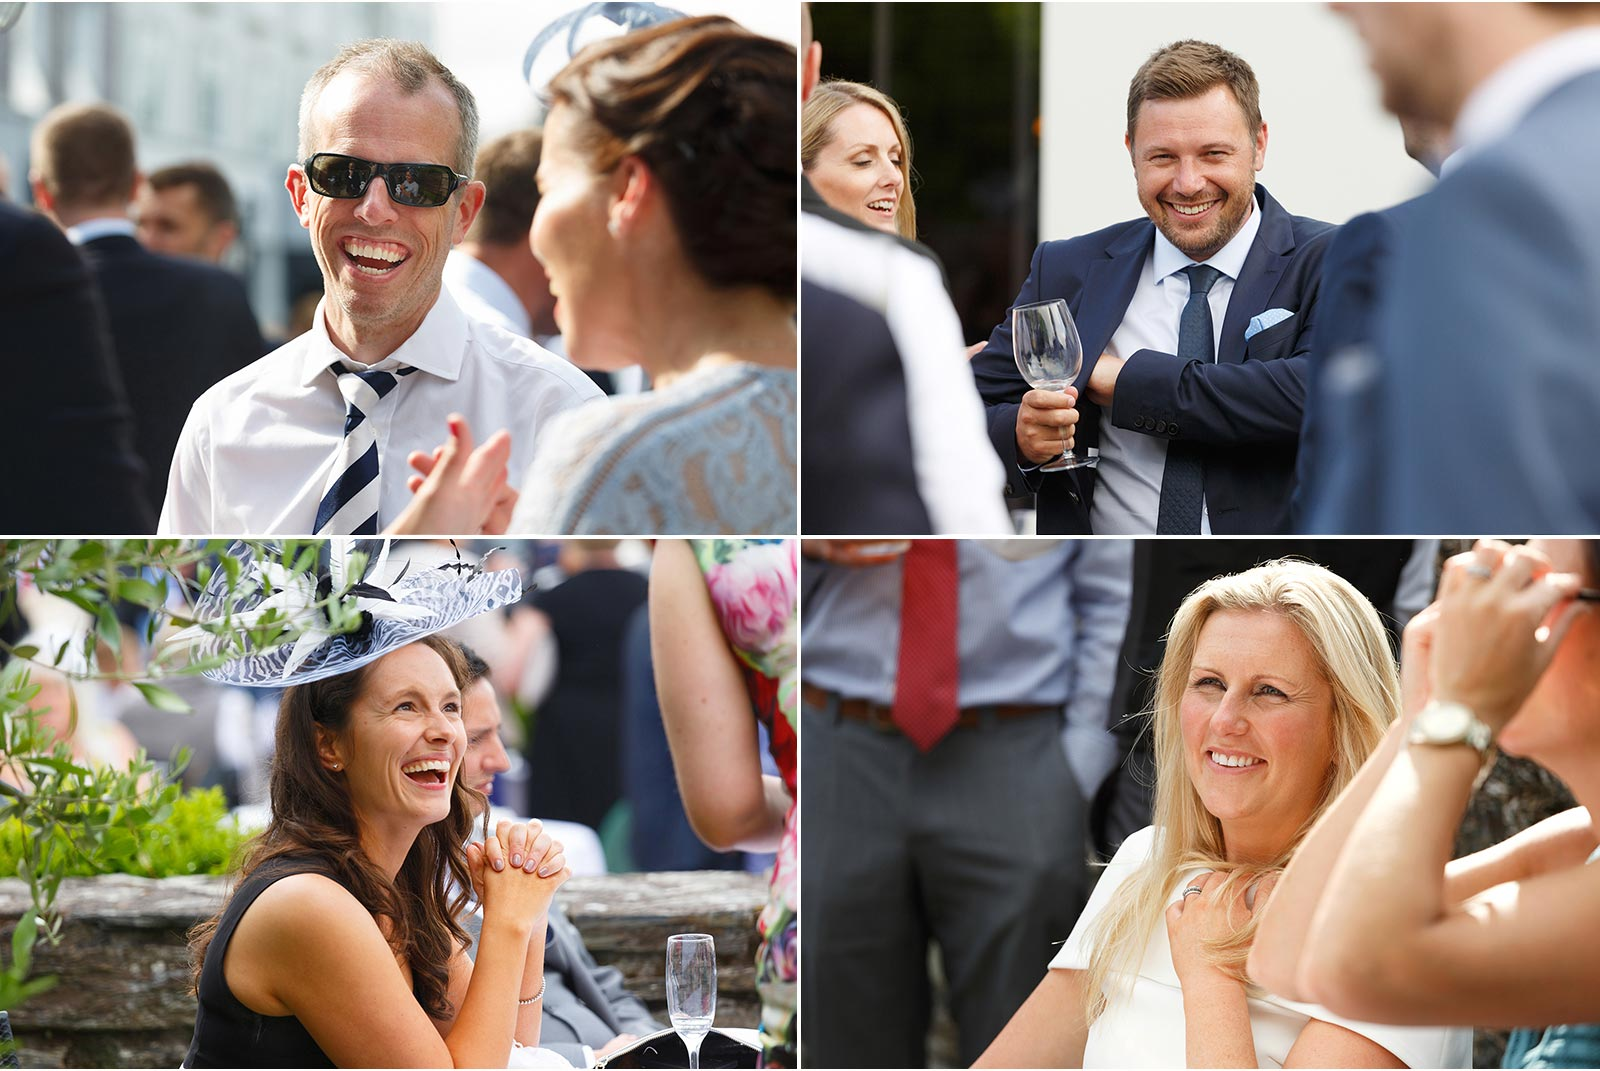 Candid wedding photography Cork, wedding guests, drinks reception, Actons hotel Kinsale